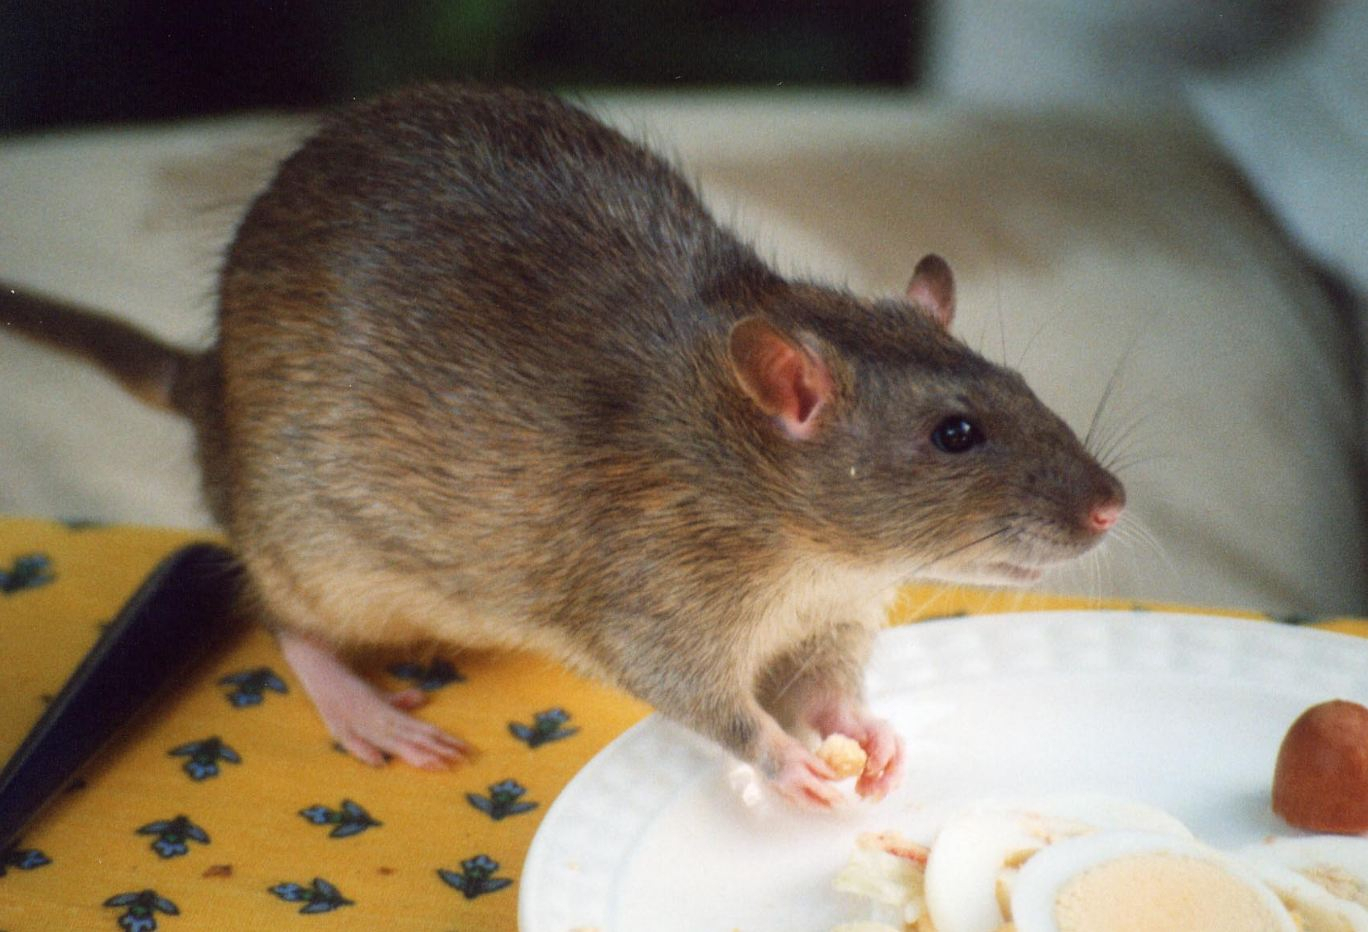 Chinese medical experts investigate hantavirus death